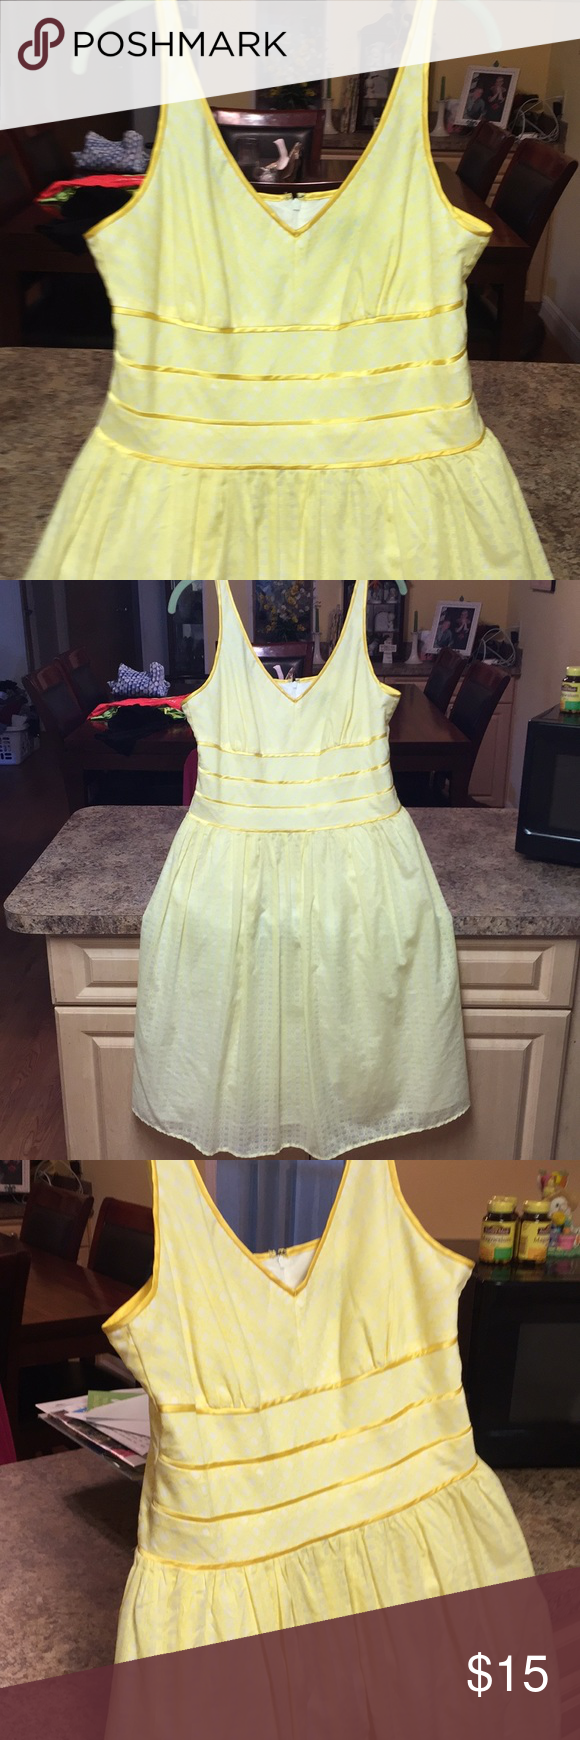 Spring Fling Size 12p Canary Yellow White Dress Yellow And White Dress Tank Top Fashion Clothes Design [ 1740 x 580 Pixel ]